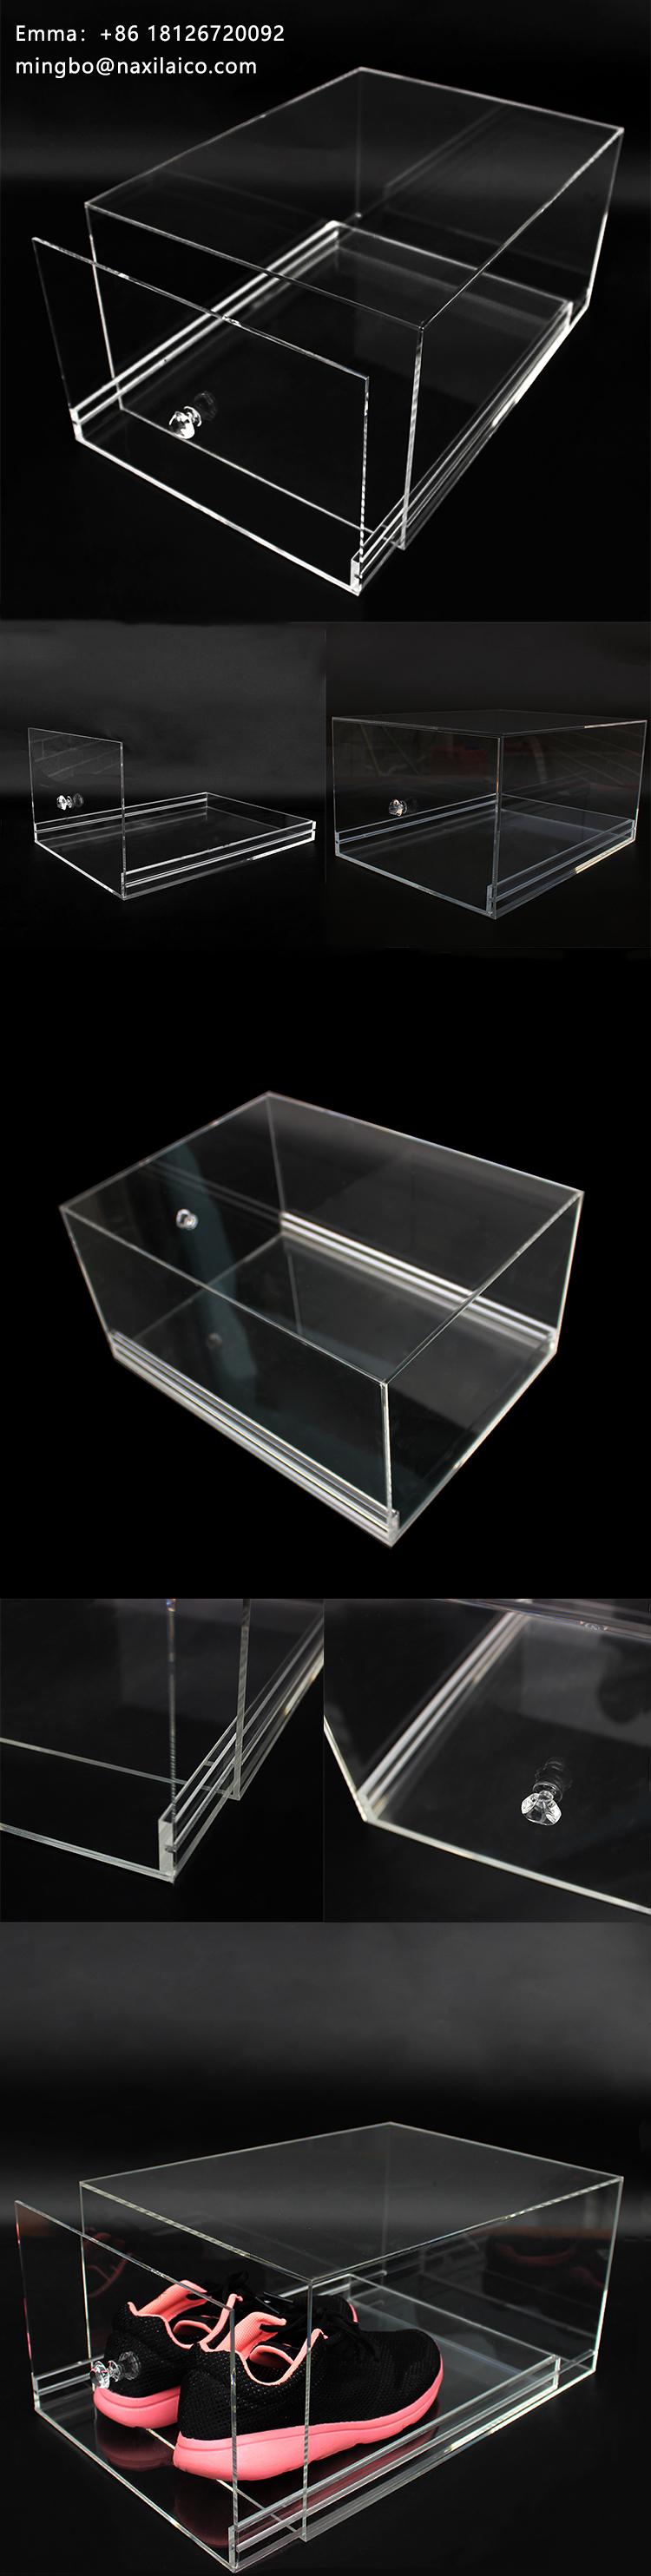 Slid drawer Acrylic box 56.jpg